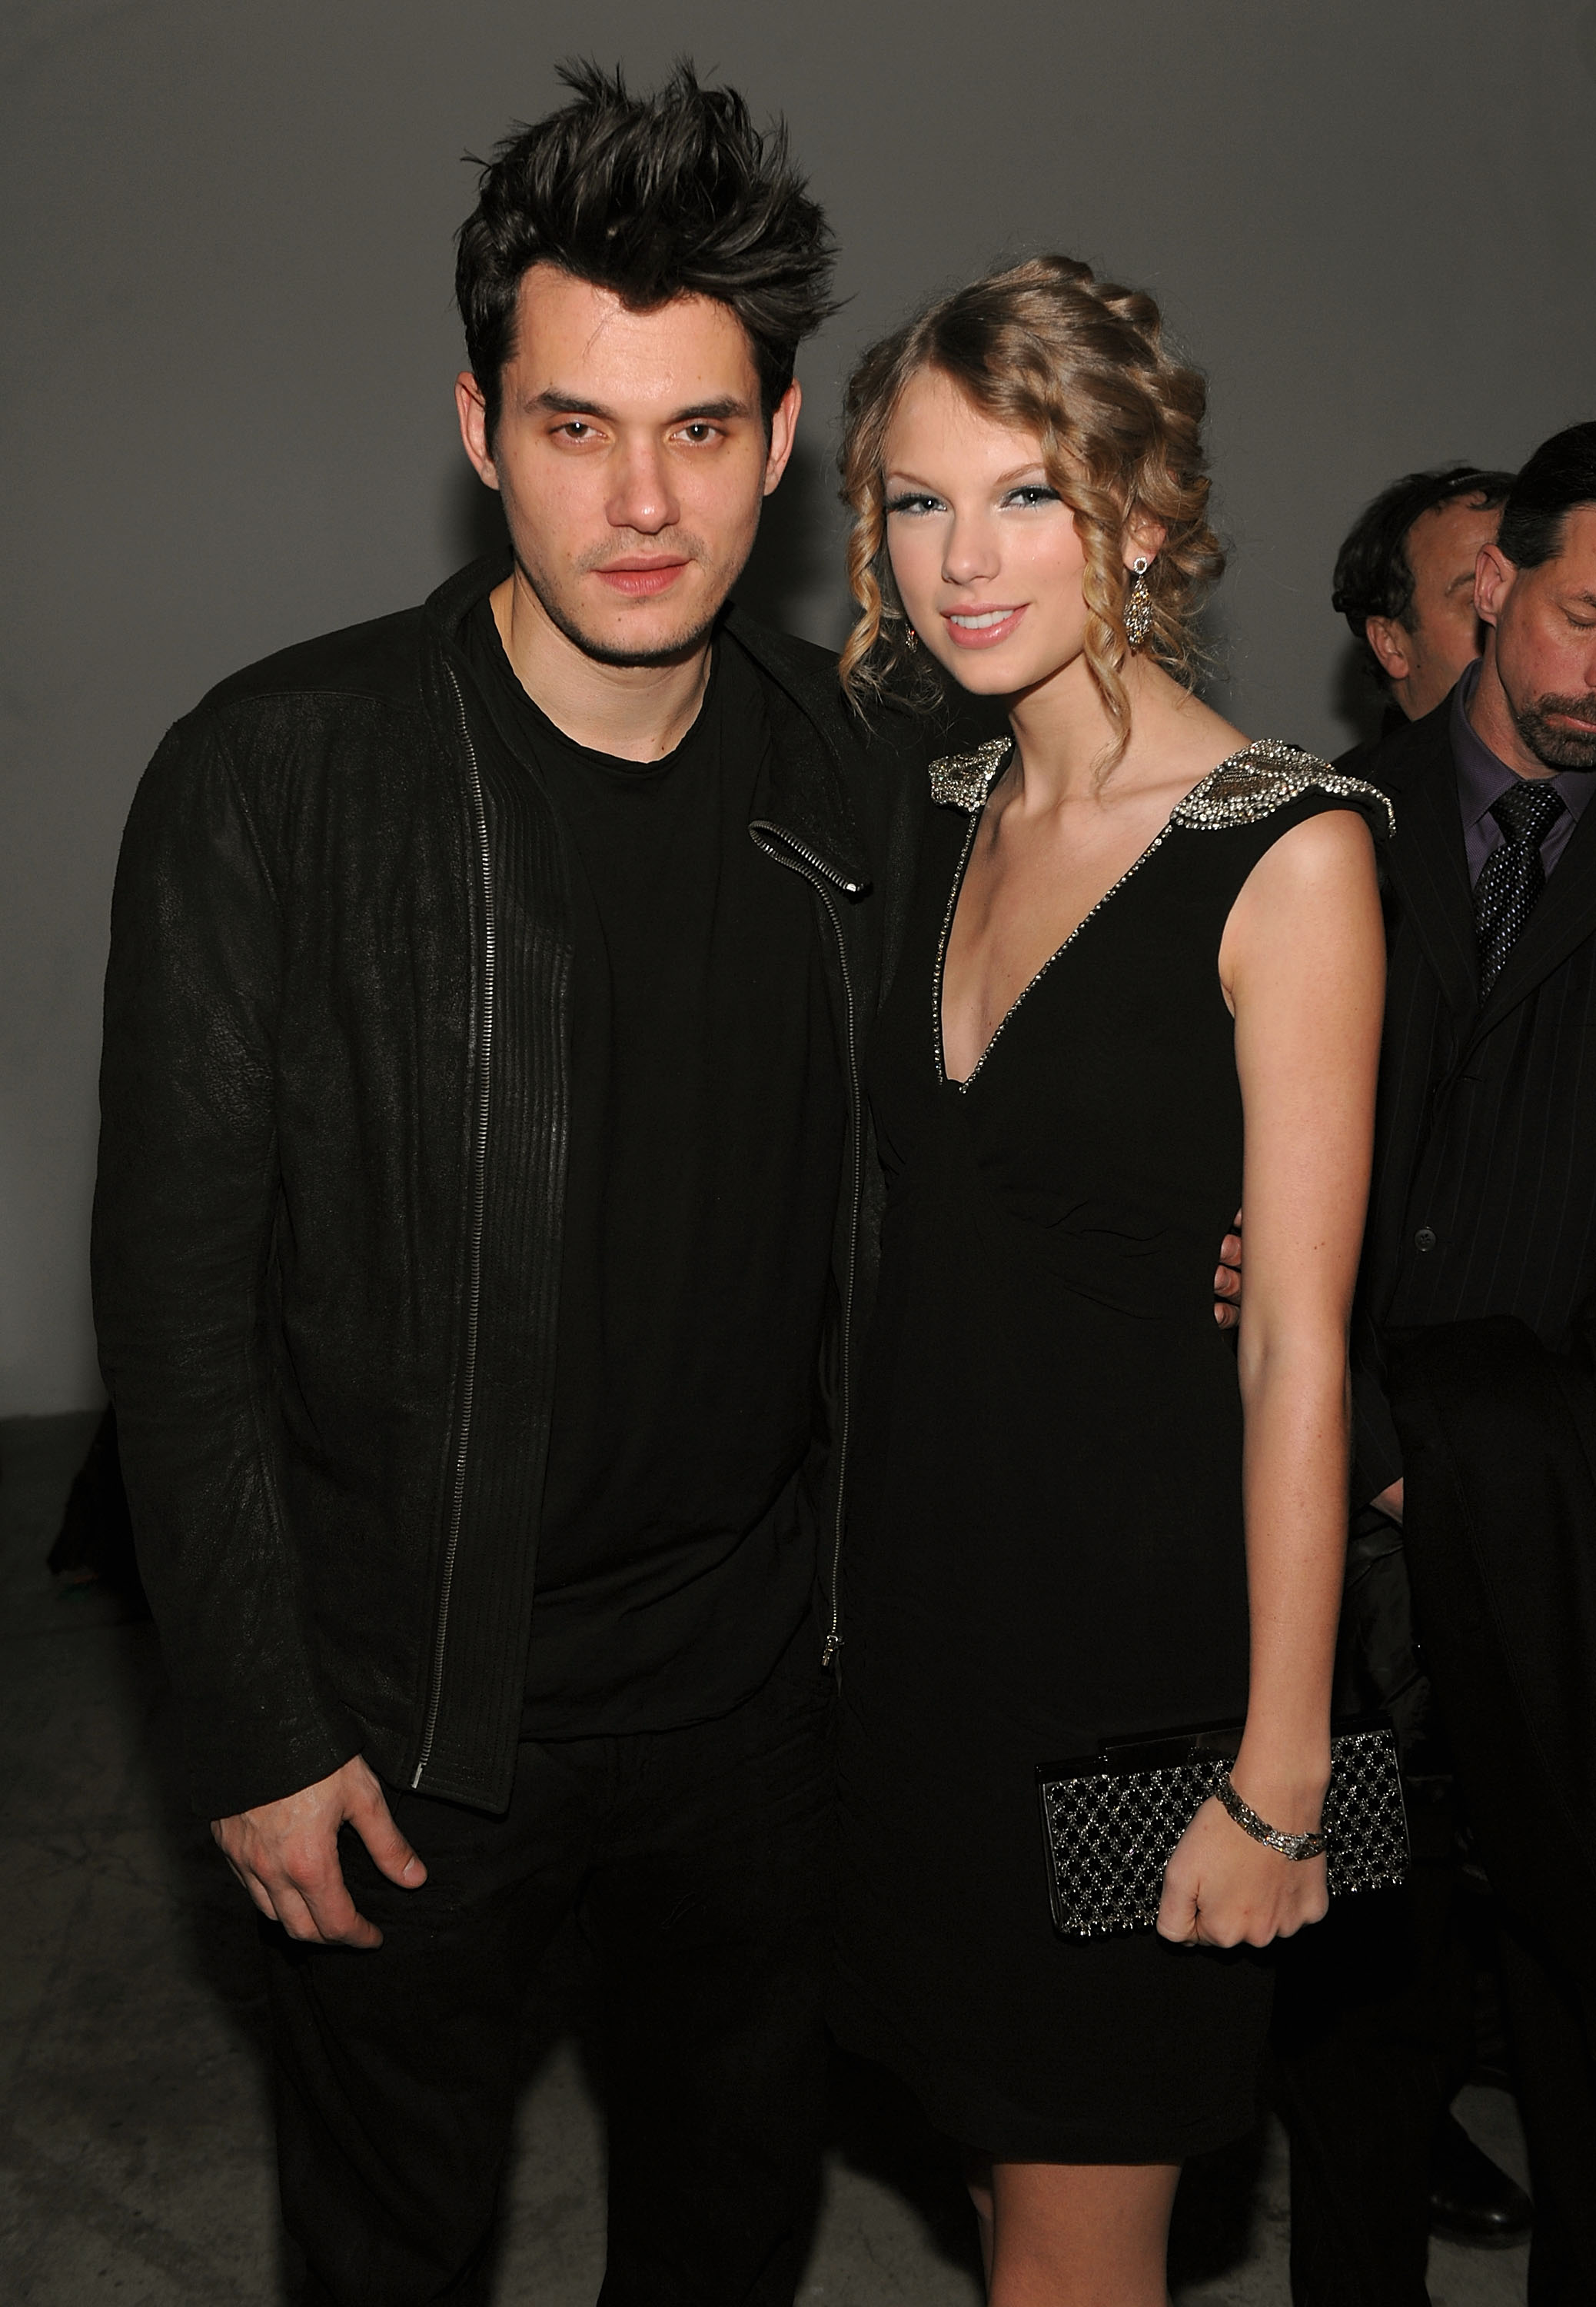 Musicians John Mayer (L) and Taylor Swift attend the launch of VEVO, the world's premiere destination for premium music video and entertainment at Skylight Studio on December 8, 2009 in New York City.